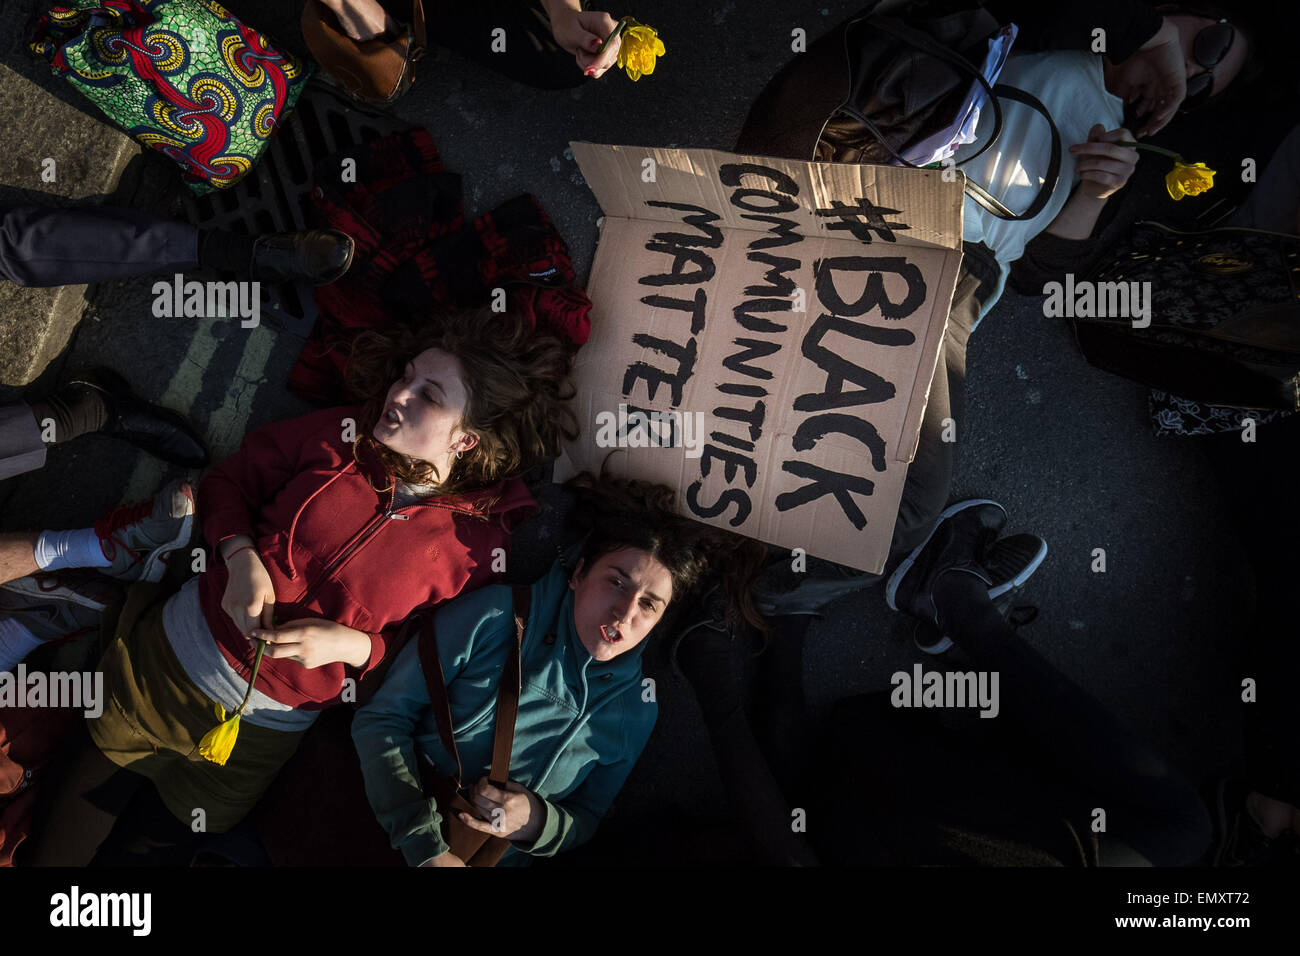 London, UK. 23rd April, 2015. Die-In Protest for Migrants outside Parliament Buildings Credit:  Guy Corbishley/Alamy - Stock Image